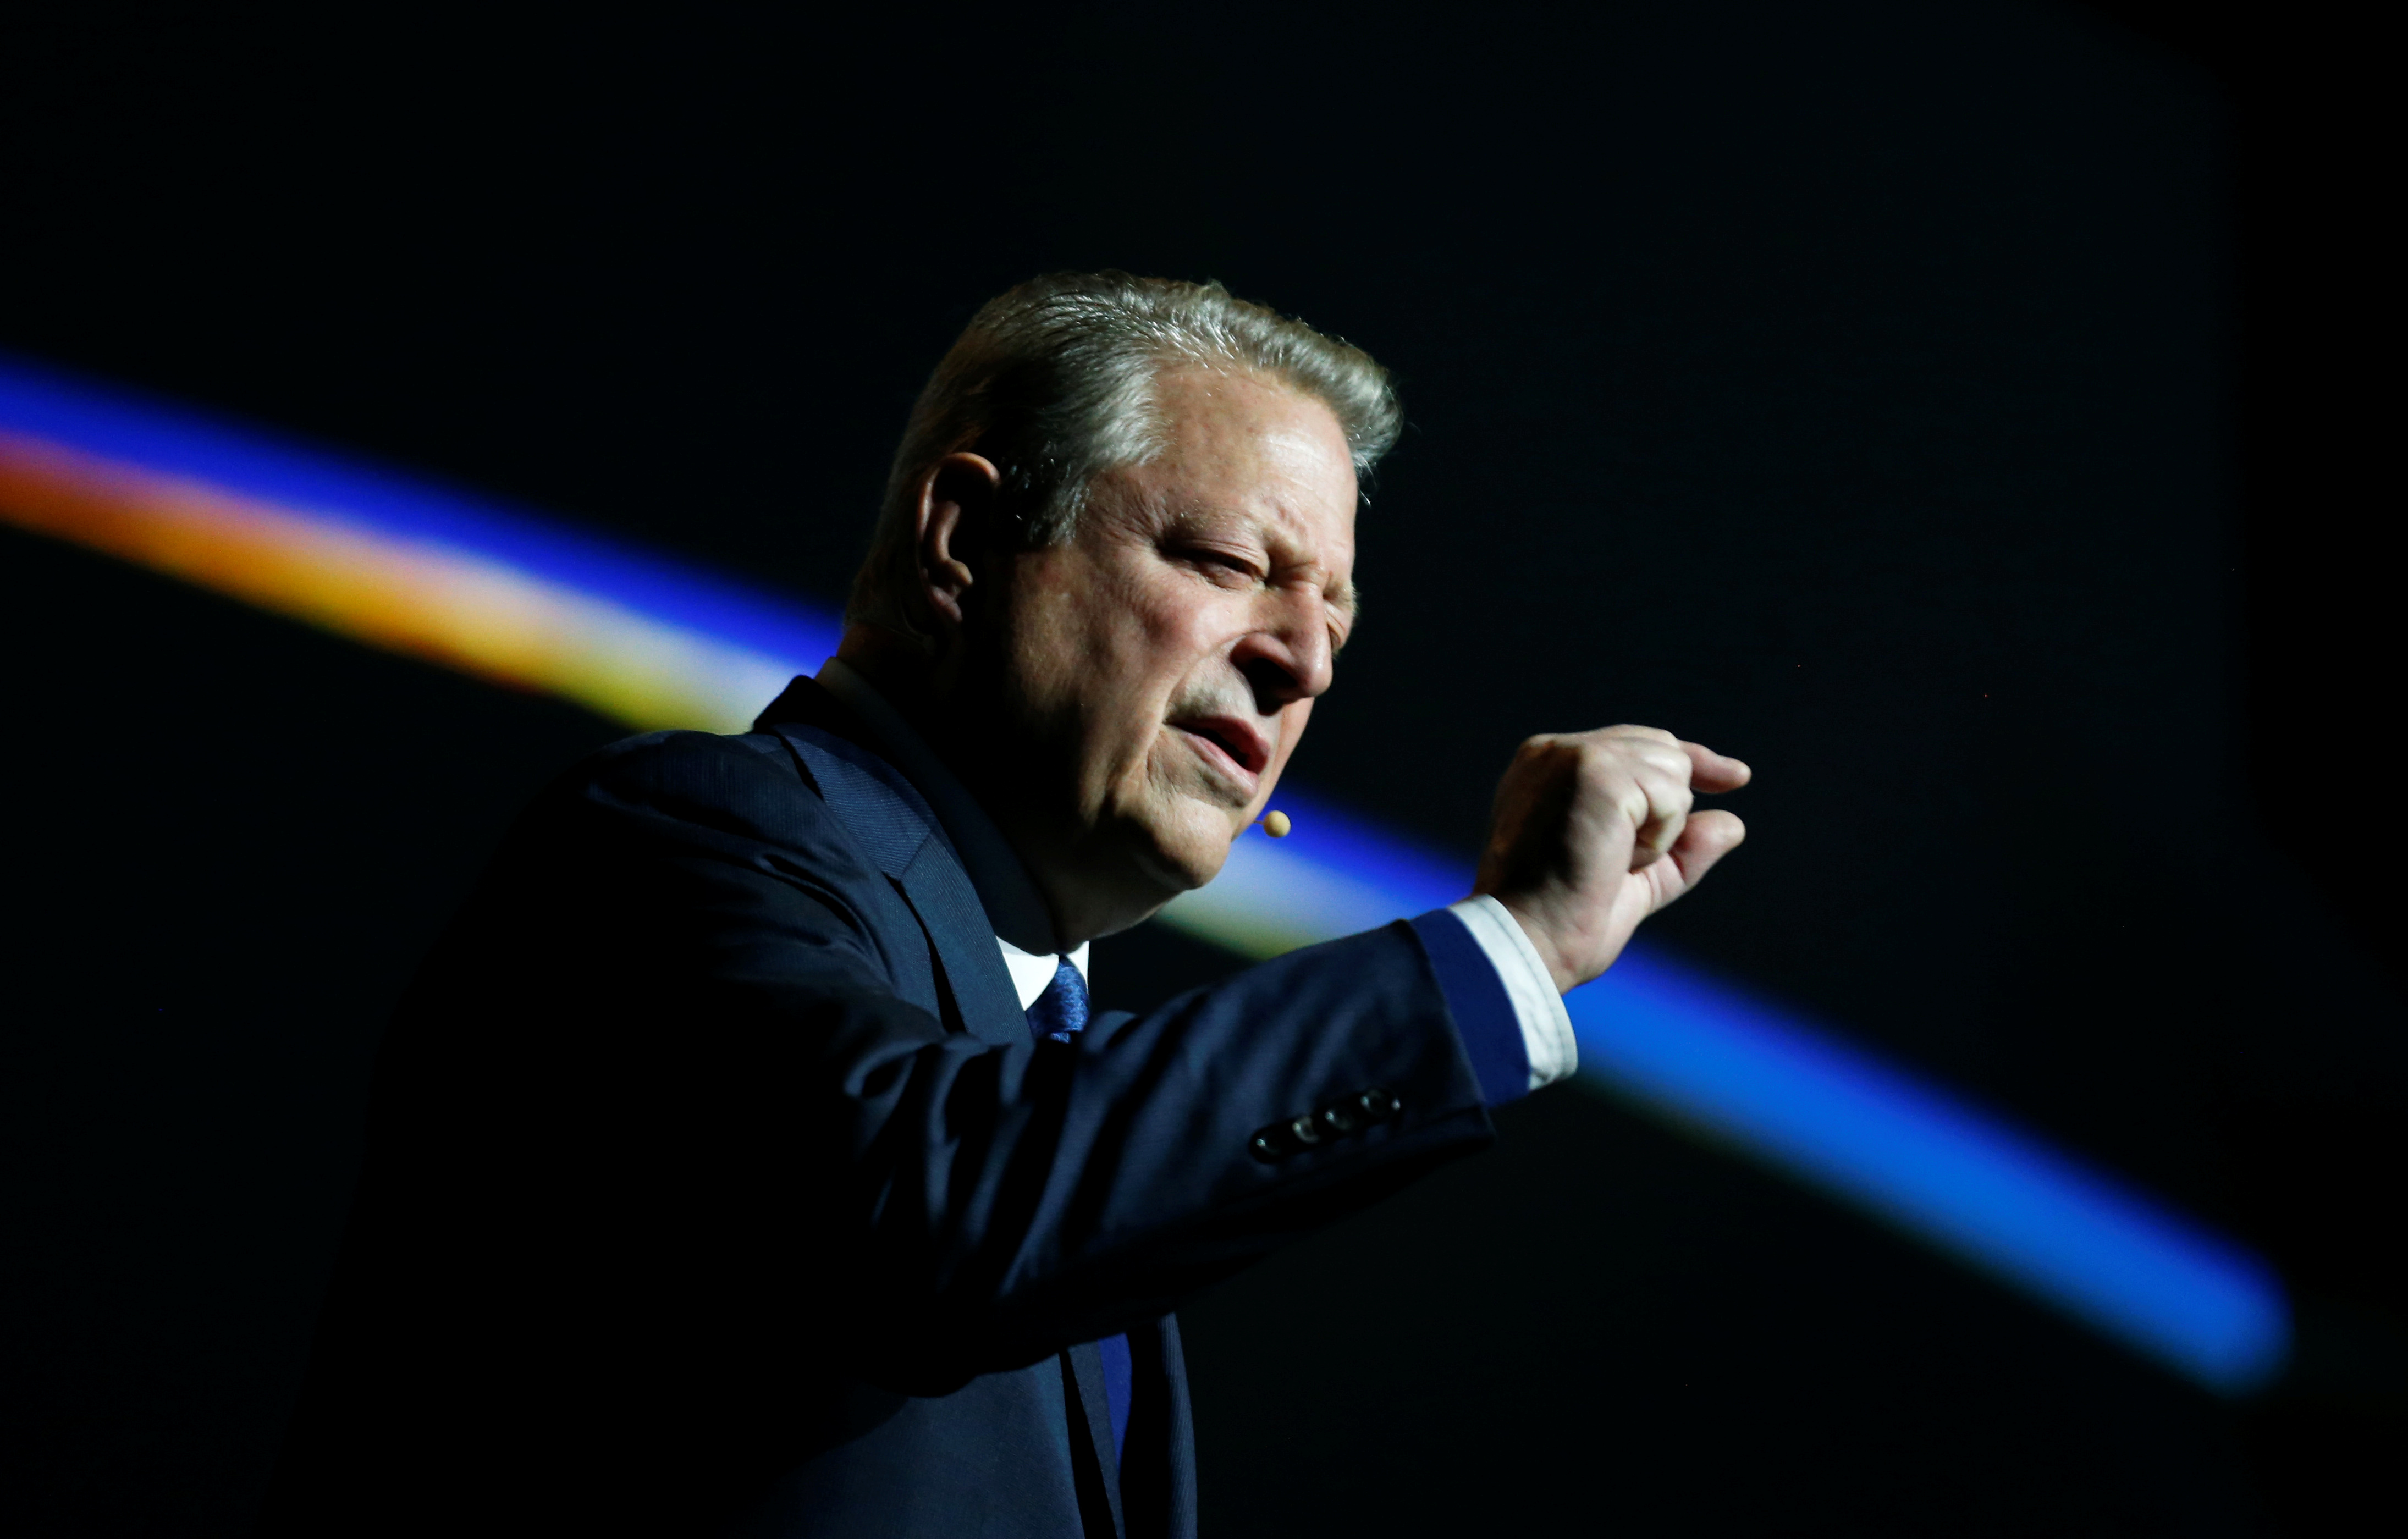 Al Gore, former U.S. Vice President and Climate Reality Project Chairman, gestures as he speaks at the COP24 UN Climate Change Conference 2018 in Katowice, Poland December 12, 2018. Agencja Gazeta/Grzegorz Celejewski/via REUTERS